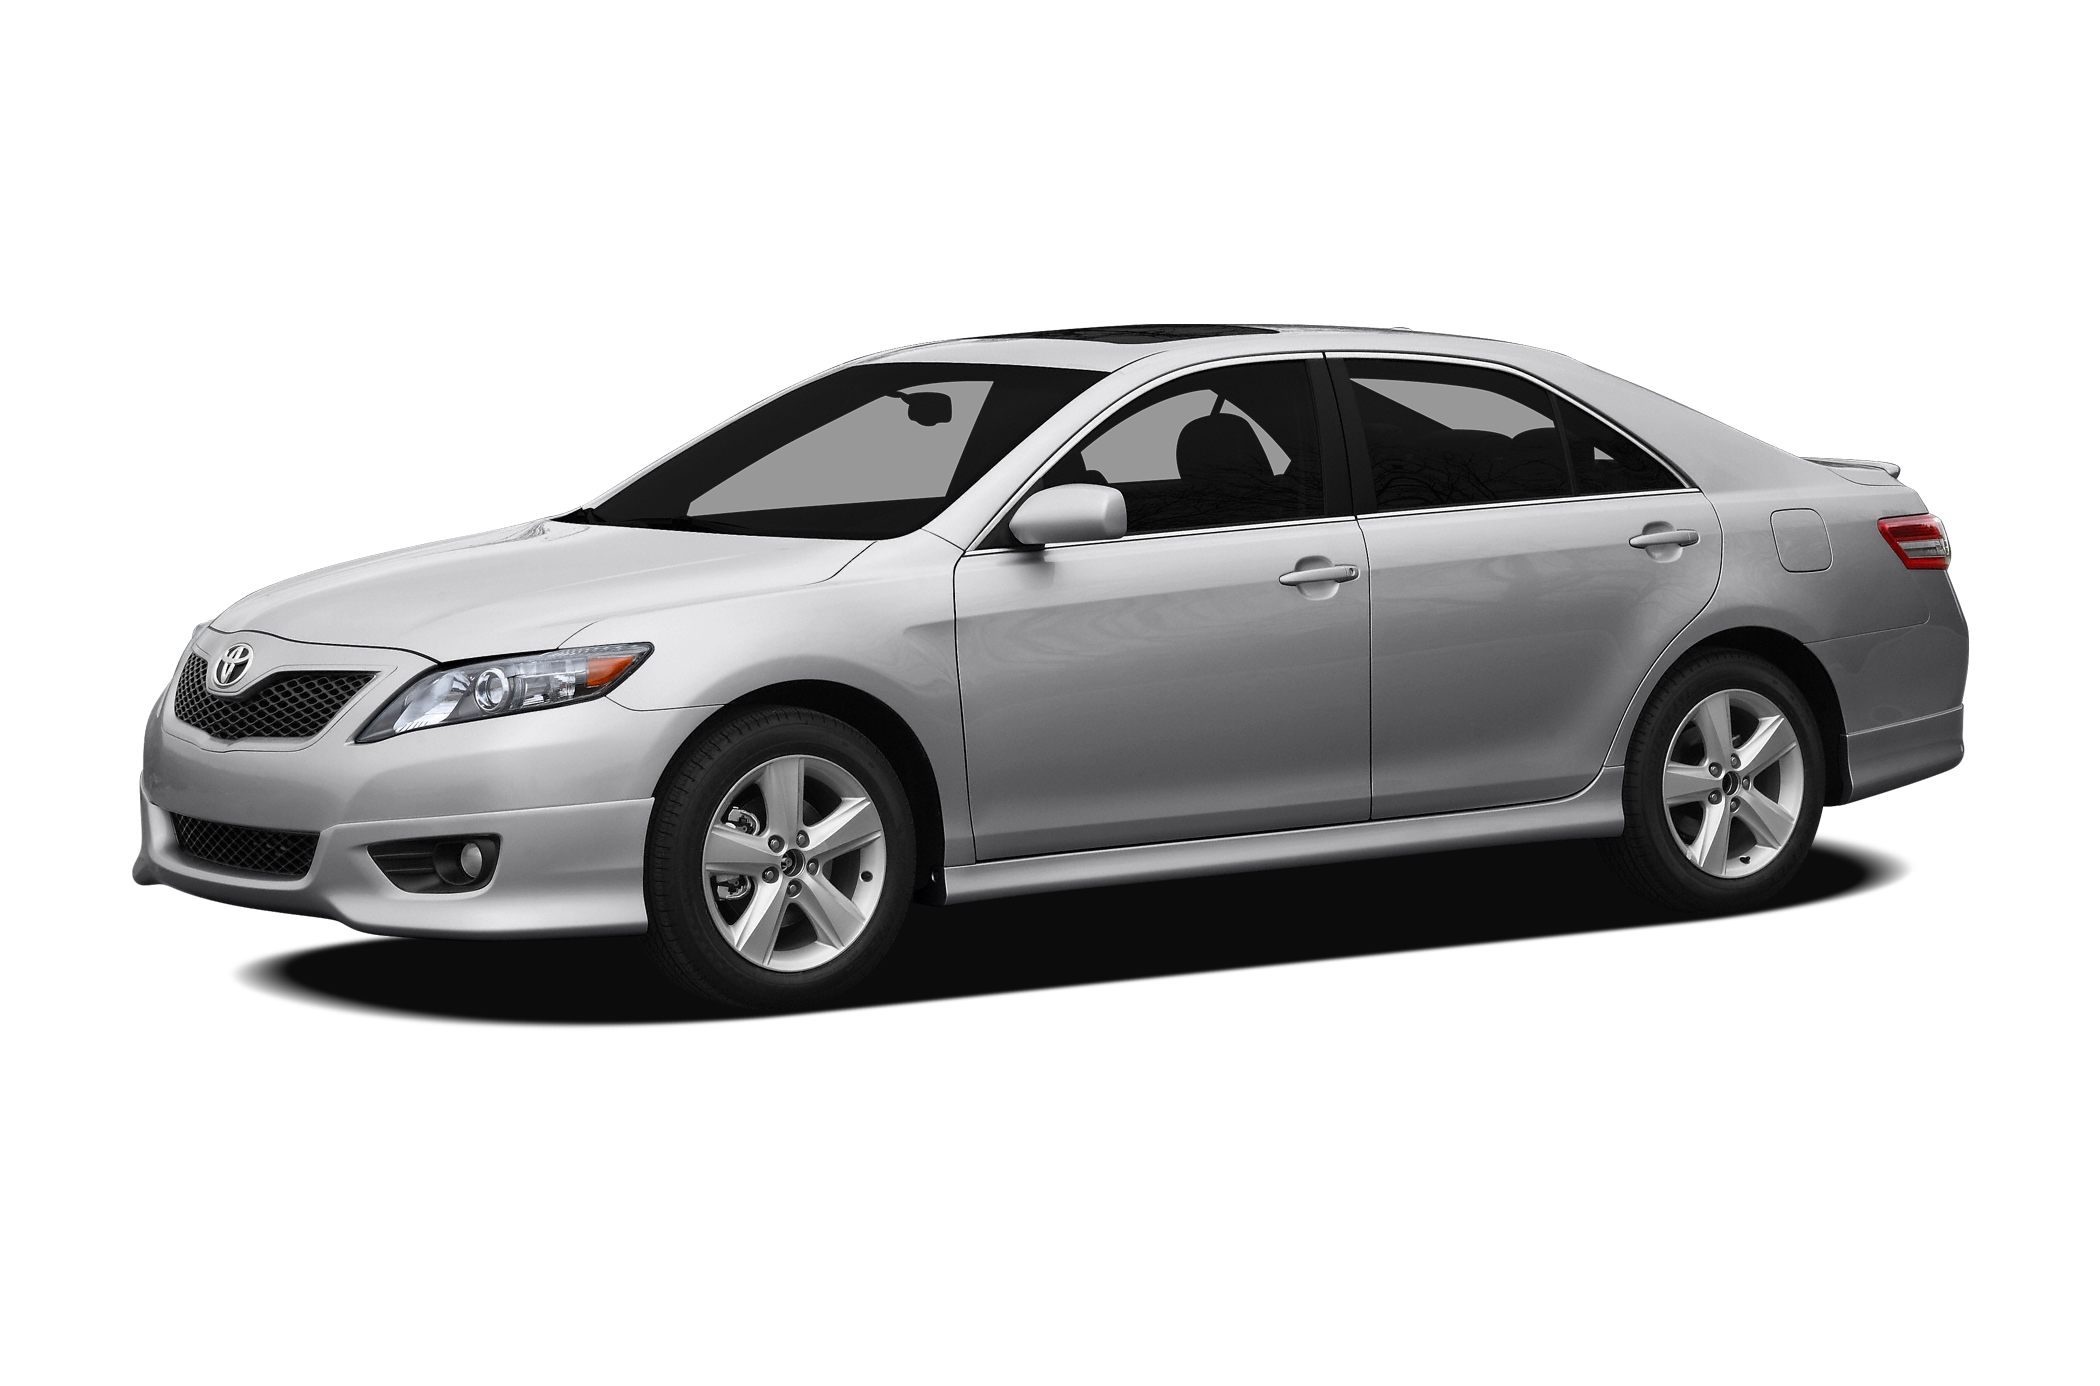 2010 Toyota Camry LE Sedan for sale in Dalton for $0 with 128,500 miles